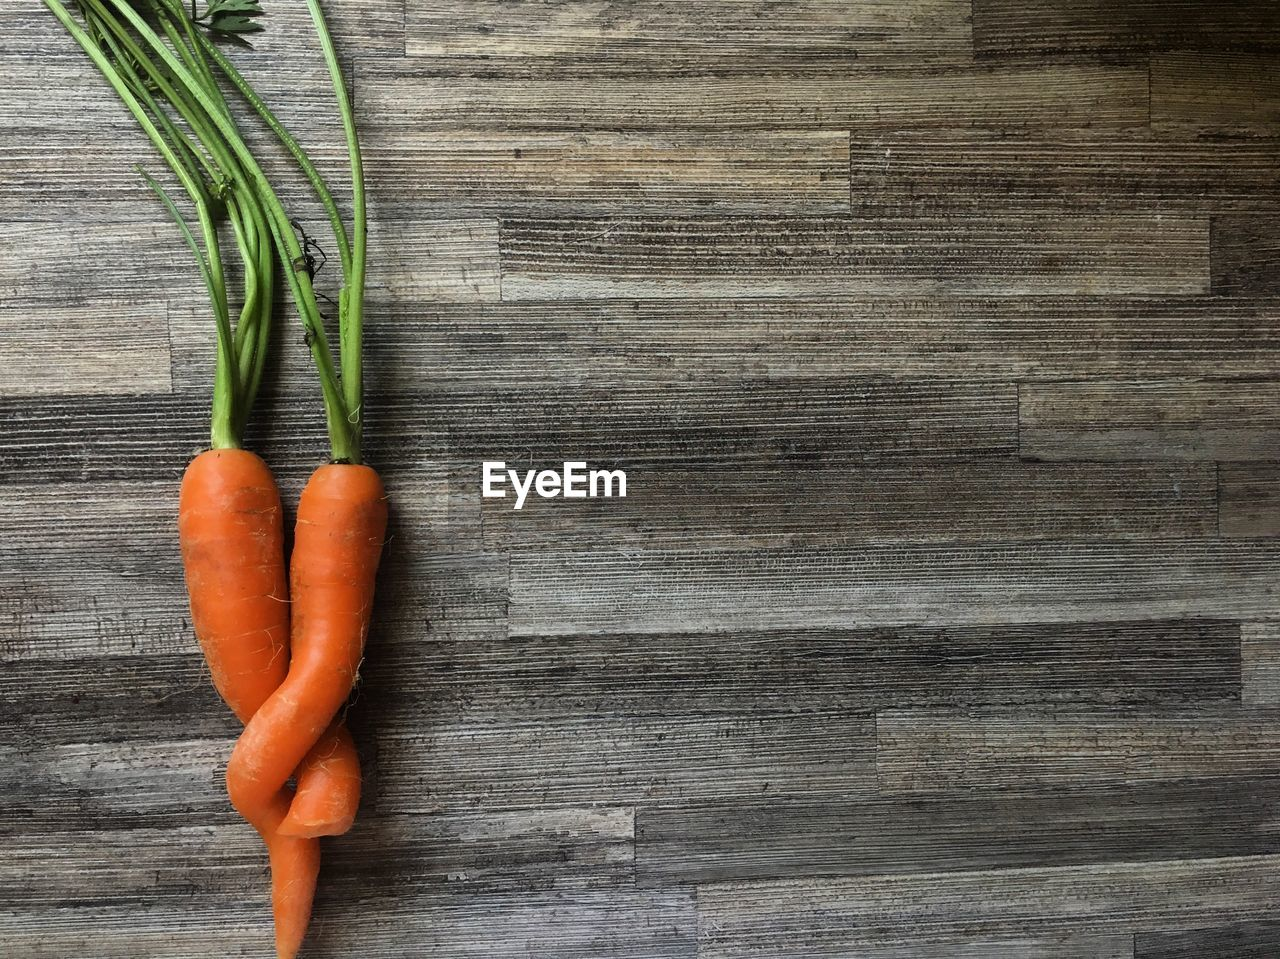 food and drink, food, wood - material, vegetable, healthy eating, wellbeing, freshness, table, still life, root vegetable, directly above, carrot, no people, indoors, high angle view, close-up, raw food, green color, orange color, plant part